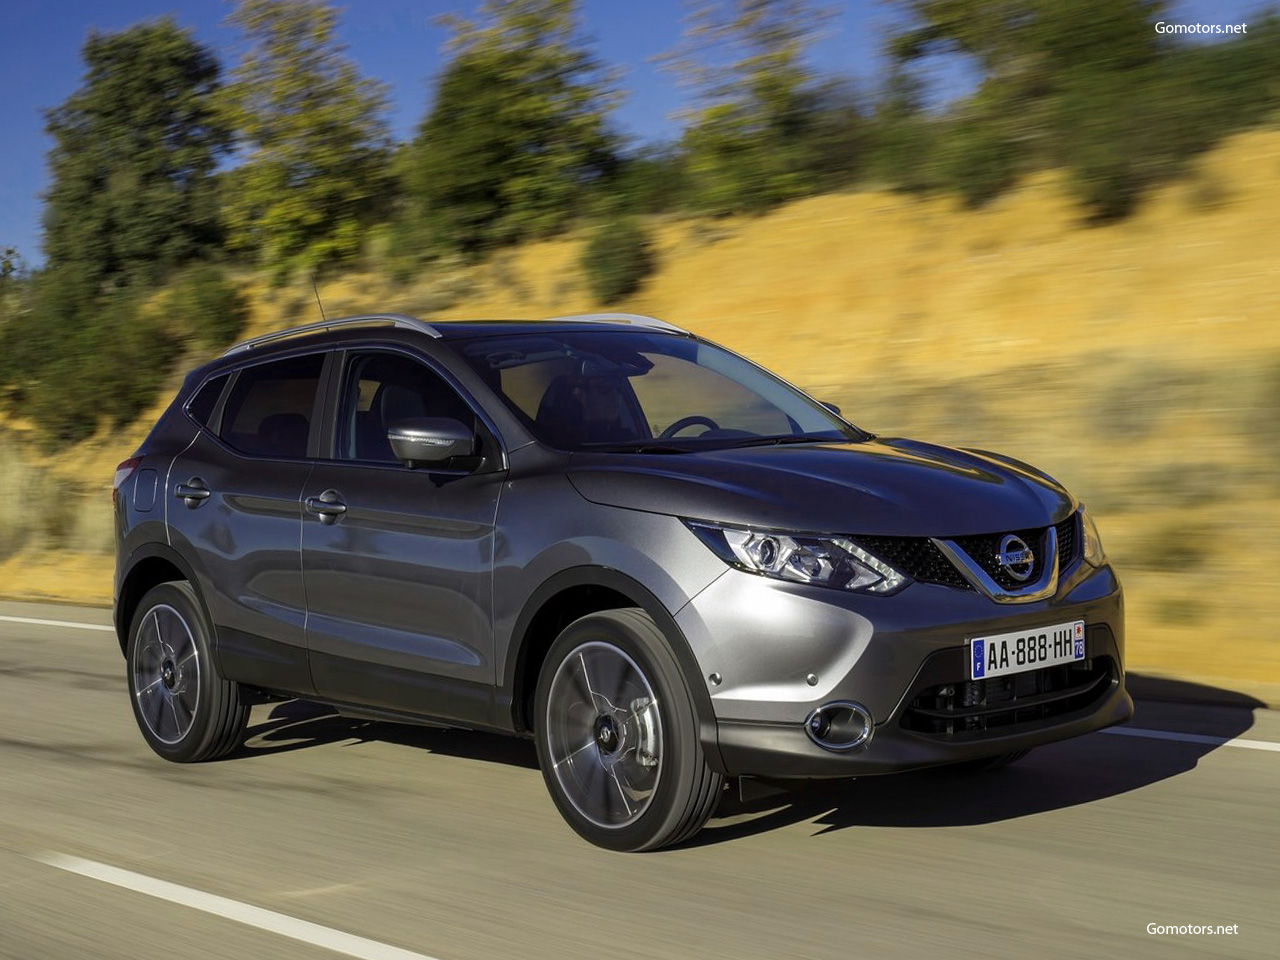 nissan qashqai 2014 photos reviews news specs buy car. Black Bedroom Furniture Sets. Home Design Ideas